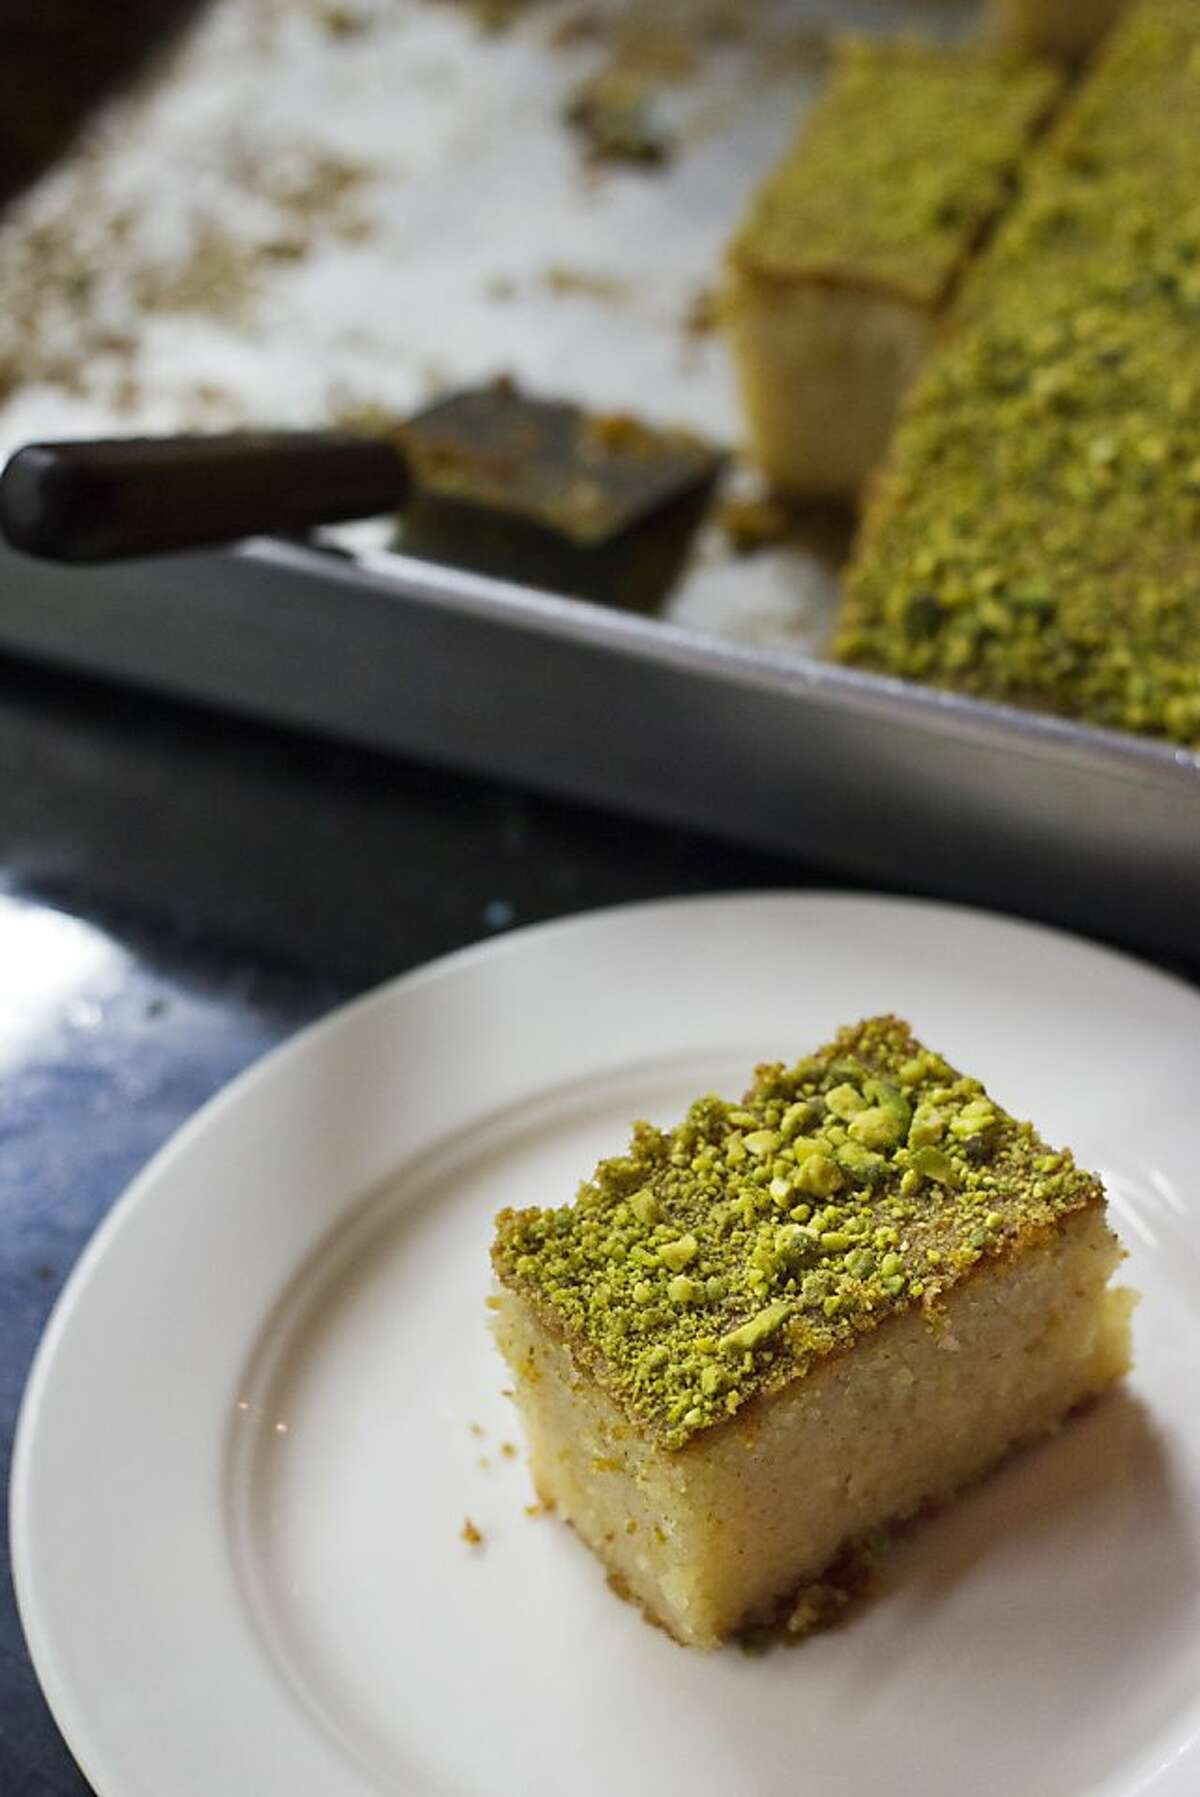 Harissa-Basboussa, a semolina cake with almonds, flavored with orange blossom water and topped with pistachios, at Cafe Zitouna on the corner of Sutter and Polk Streets in San Francisco, CA Thursday evening, October 20, 2011. Photo by Erin Lubin/Special to Chronicle